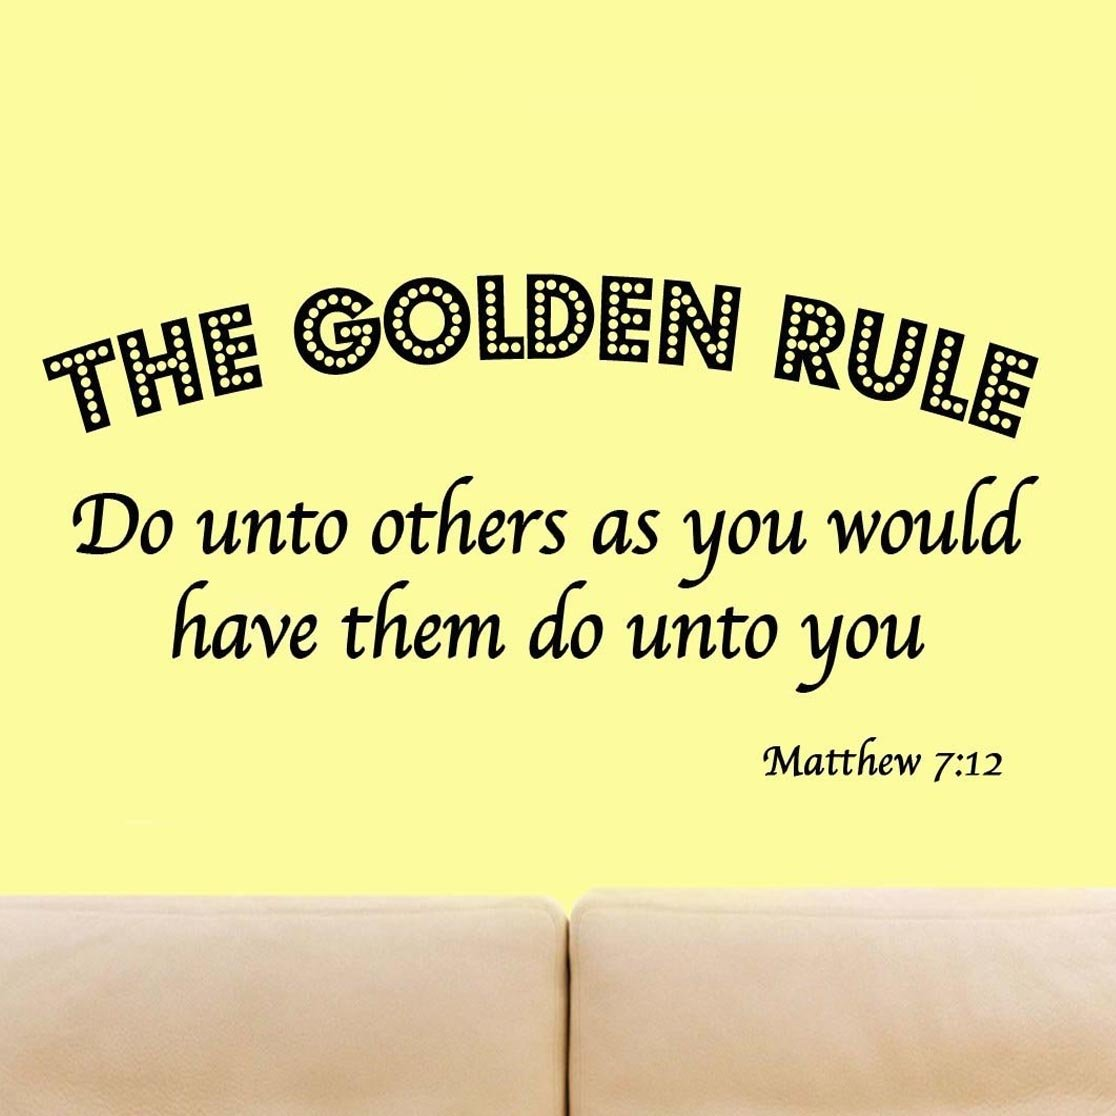 Amazon.com: The Golden Rule - Do Unto Others as You Would Have Them ...